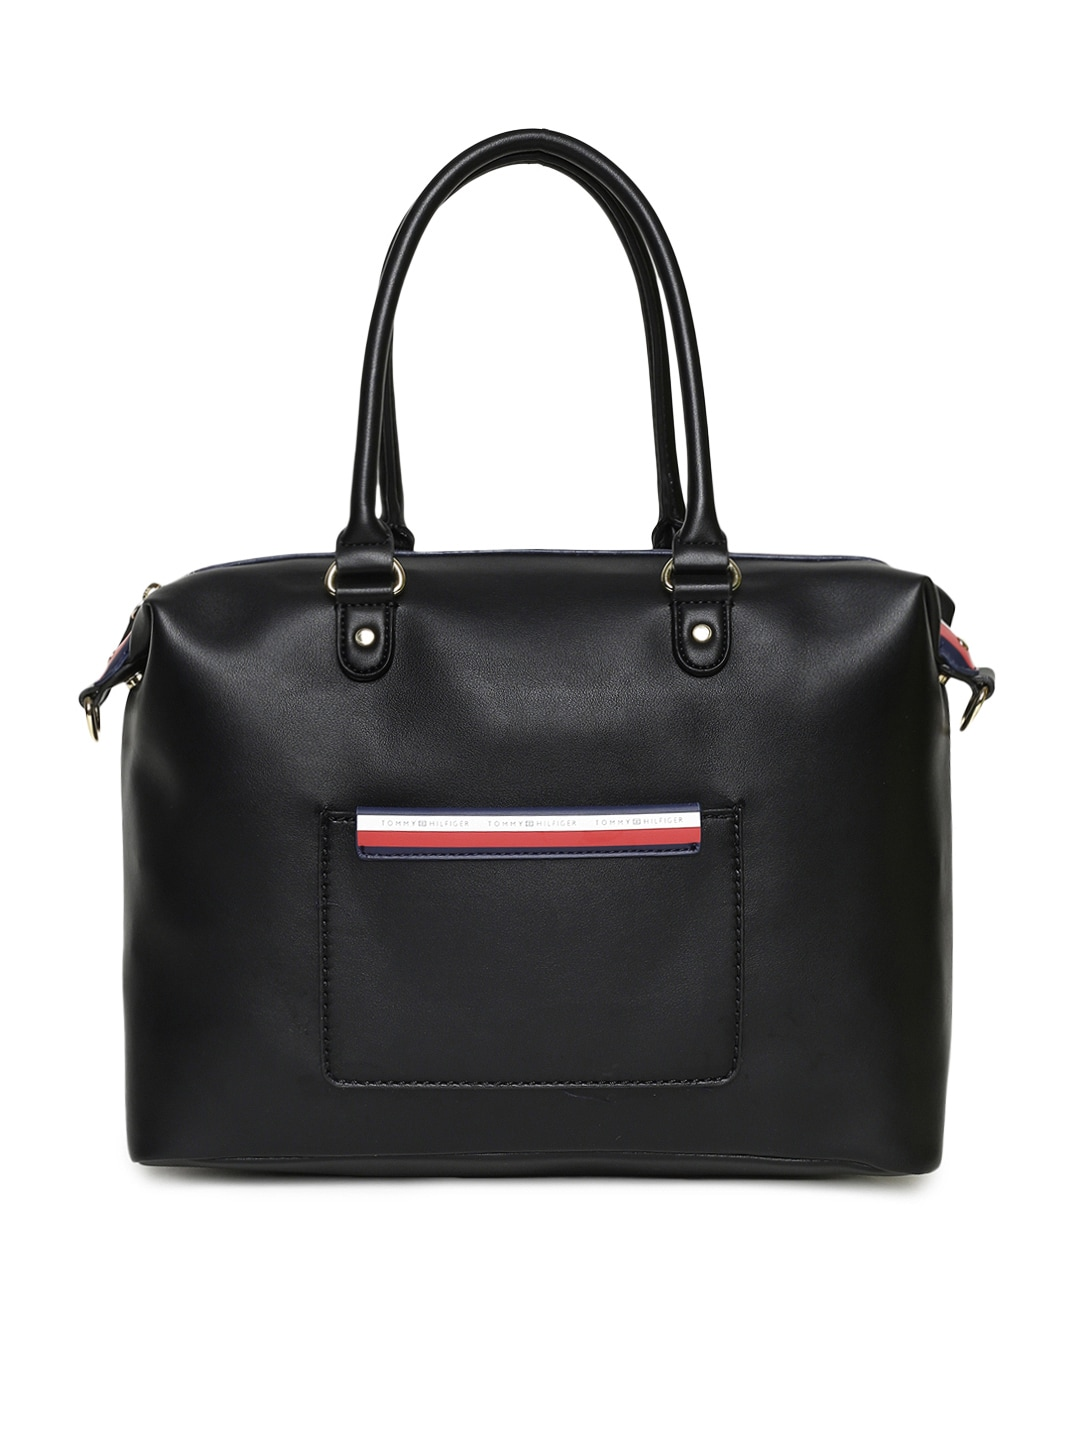 d20937a60d Women Black Bags Sling Handbags - Buy Women Black Bags Sling Handbags  online in India